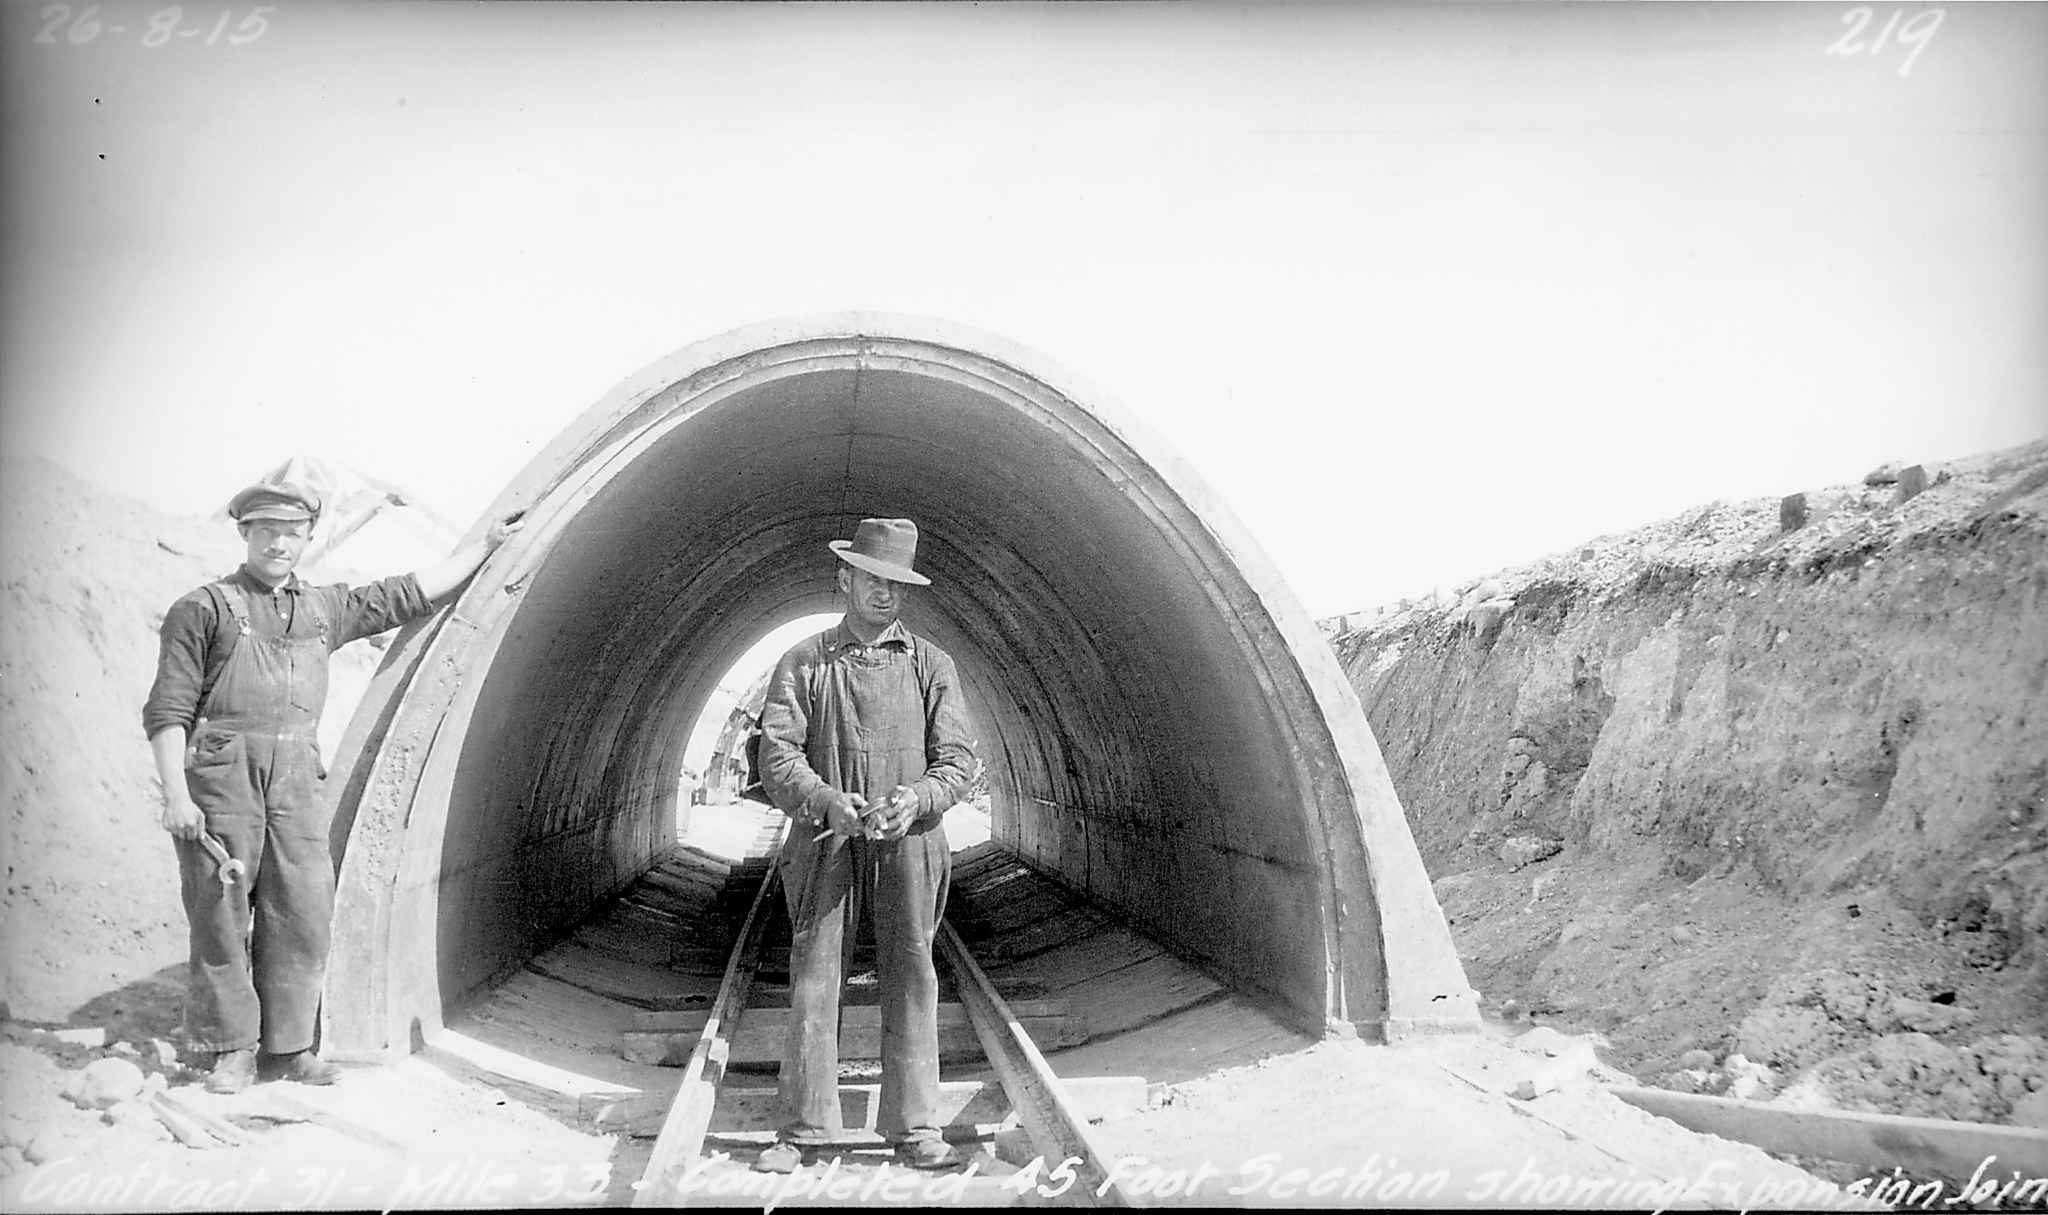 City of Winnipeg shoal lake  aqueduct circa. 1915.